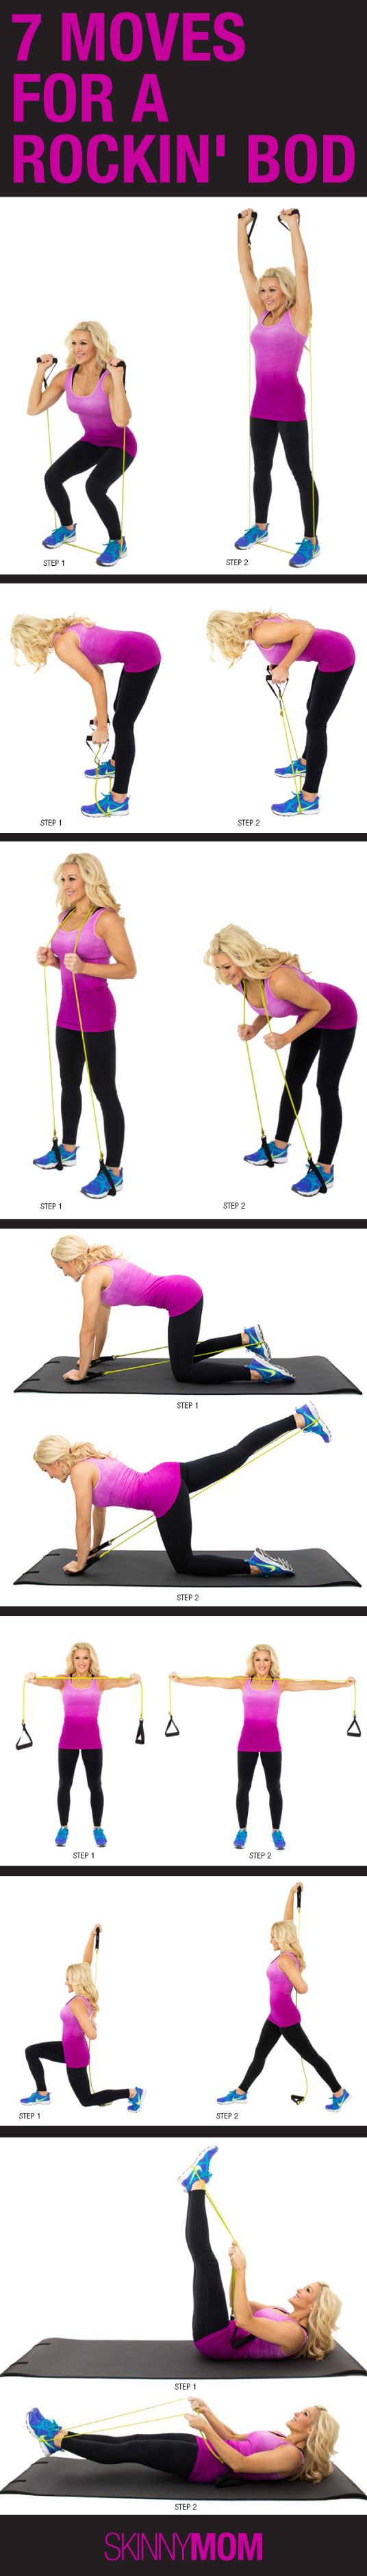 because i need an excuse to buy another piece of equipment.. | 7 resistance band moves for a rockin bod